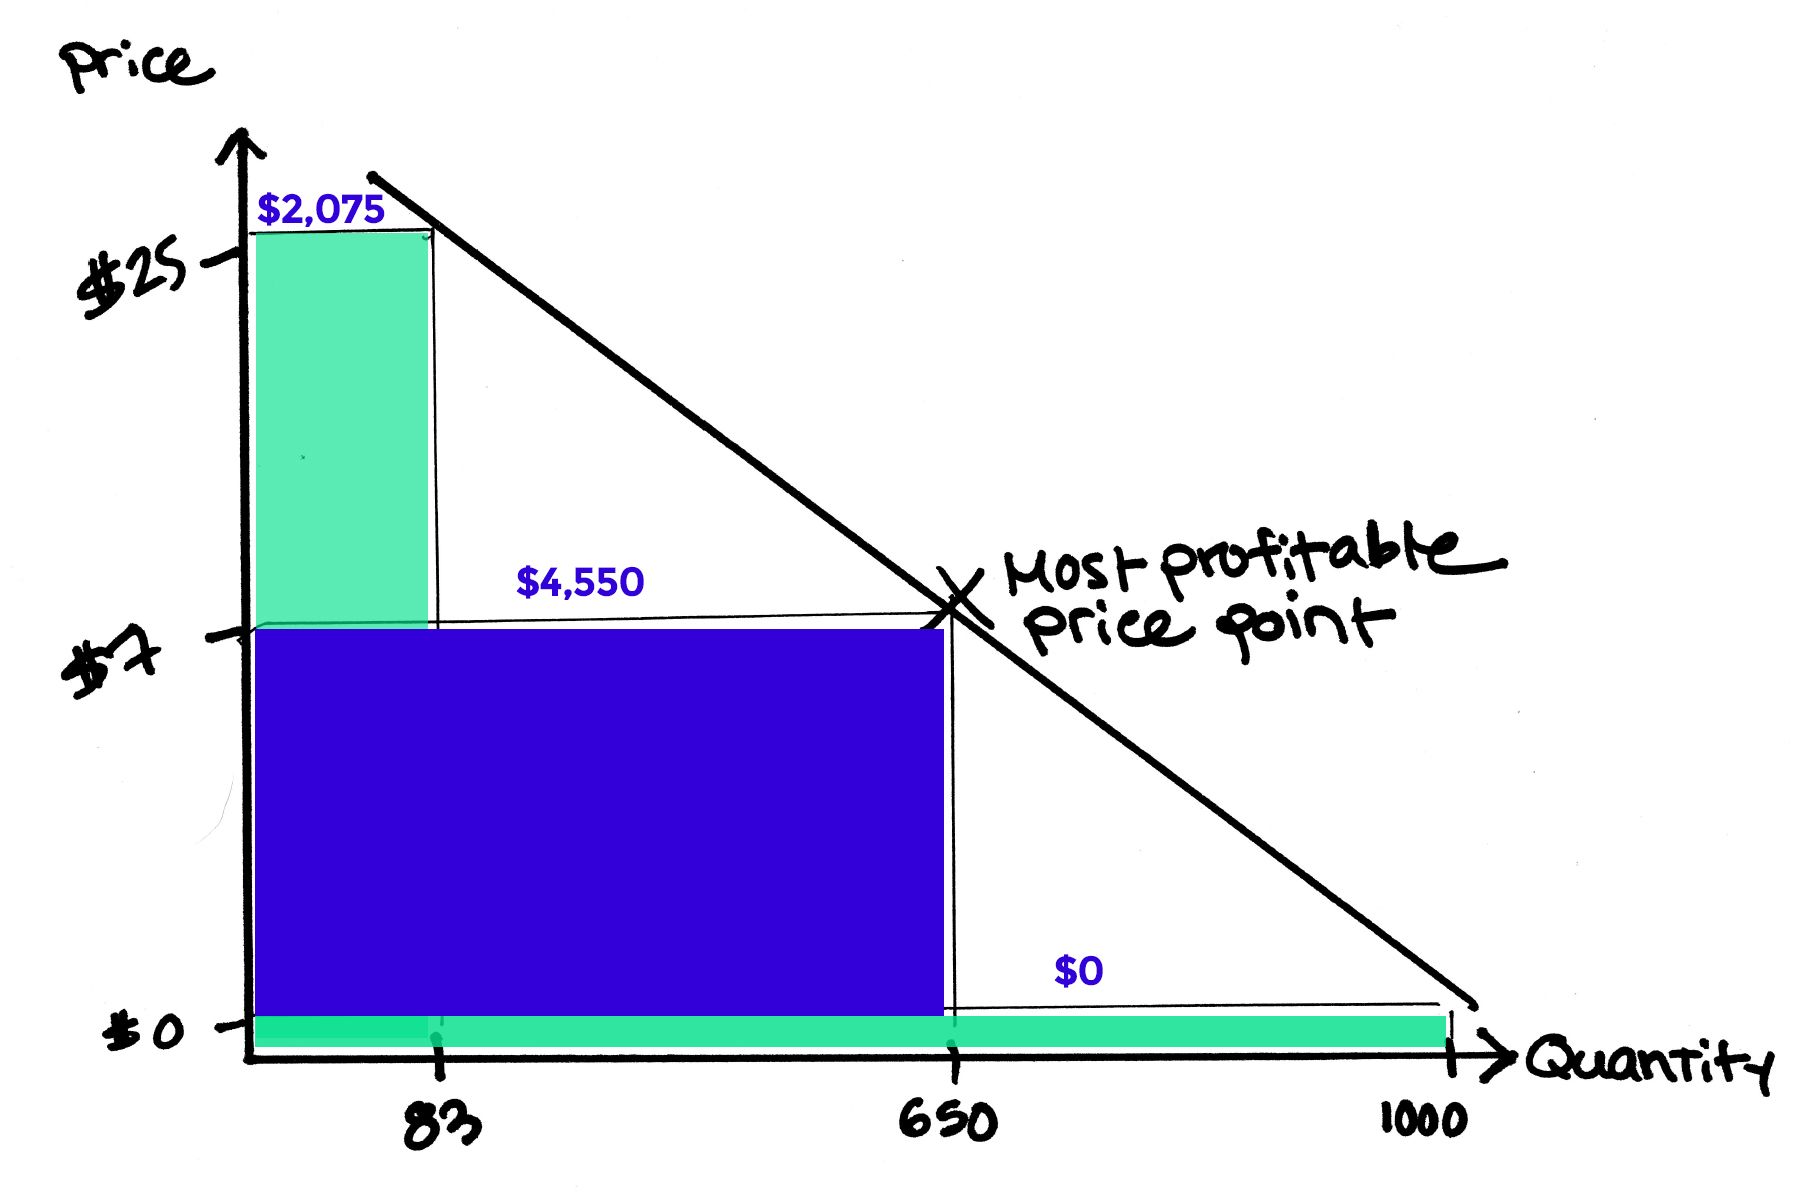 In the graph above, it is clear that selling 650 units at $7 is more profitable than 83 units at $25. One thousand people are not paying at all but are at the very least identifying themselves for further segmentation and targeting.